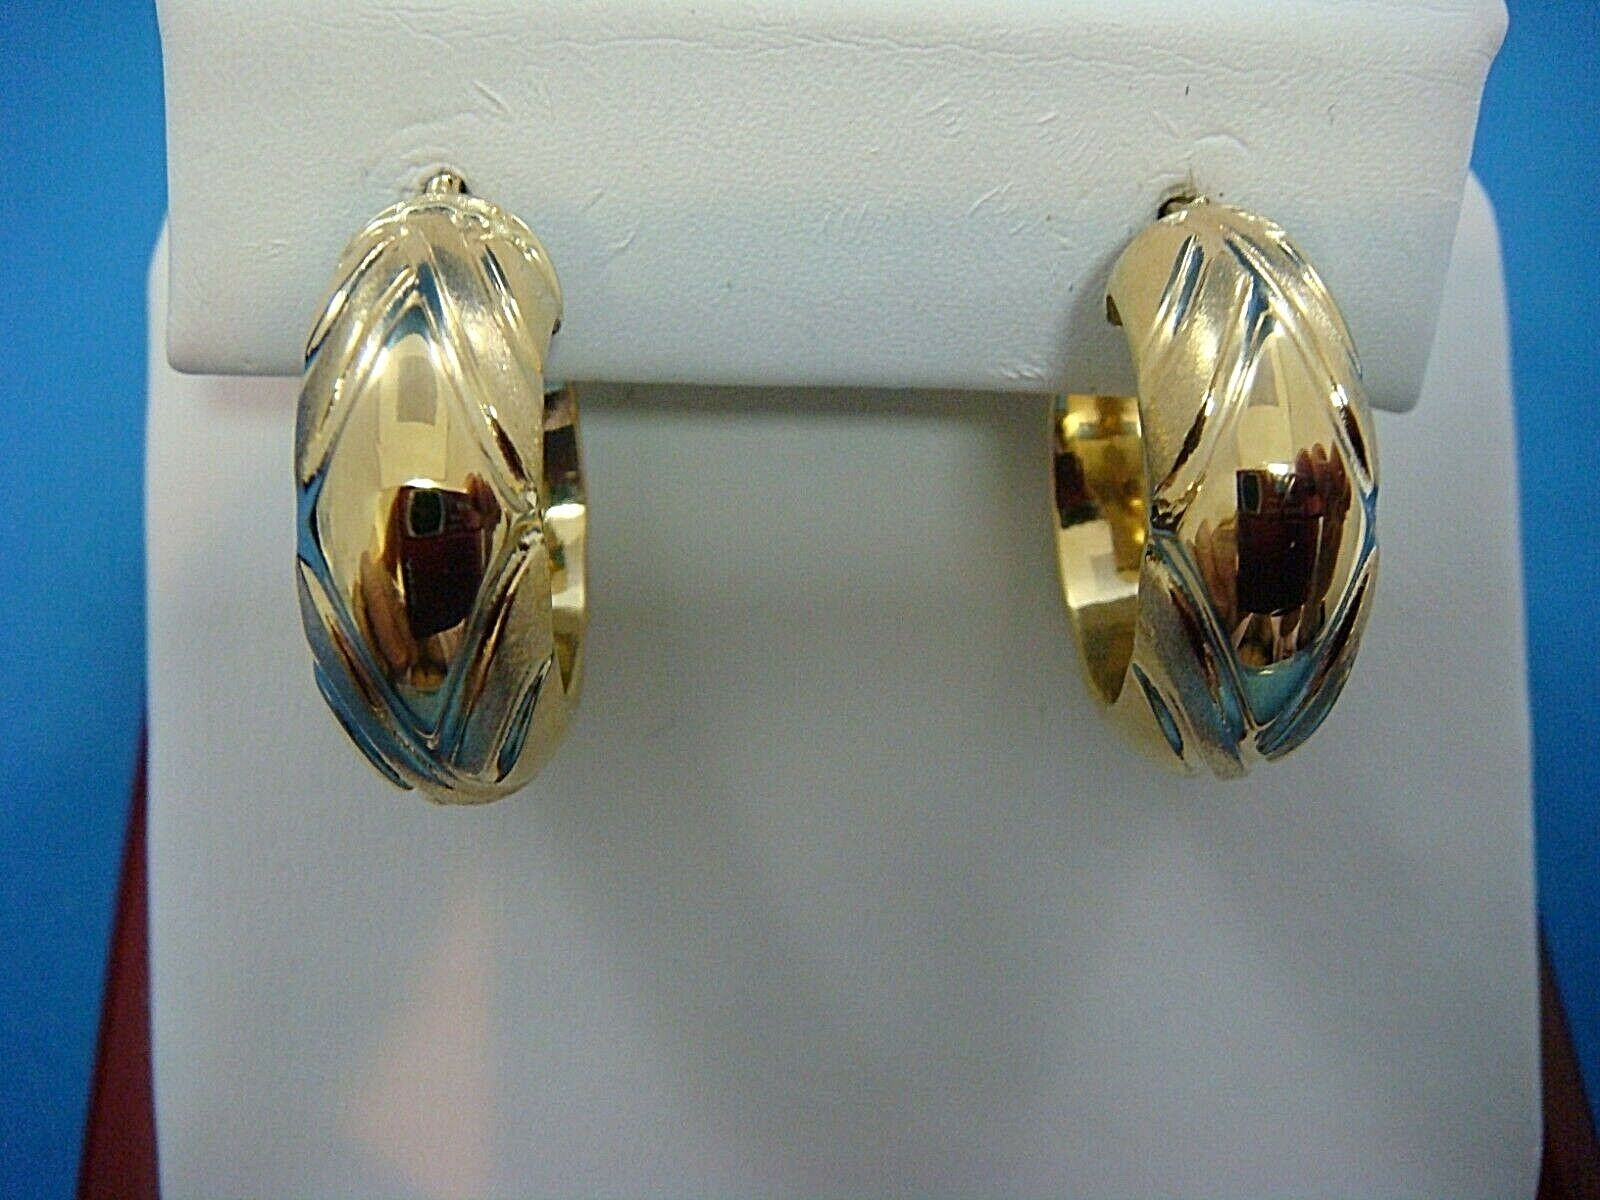 18K YELLOW gold LADIES 8.5 MM WIDE HOOP EARRINGS, 5 GRAMS, MADE IN ITALY